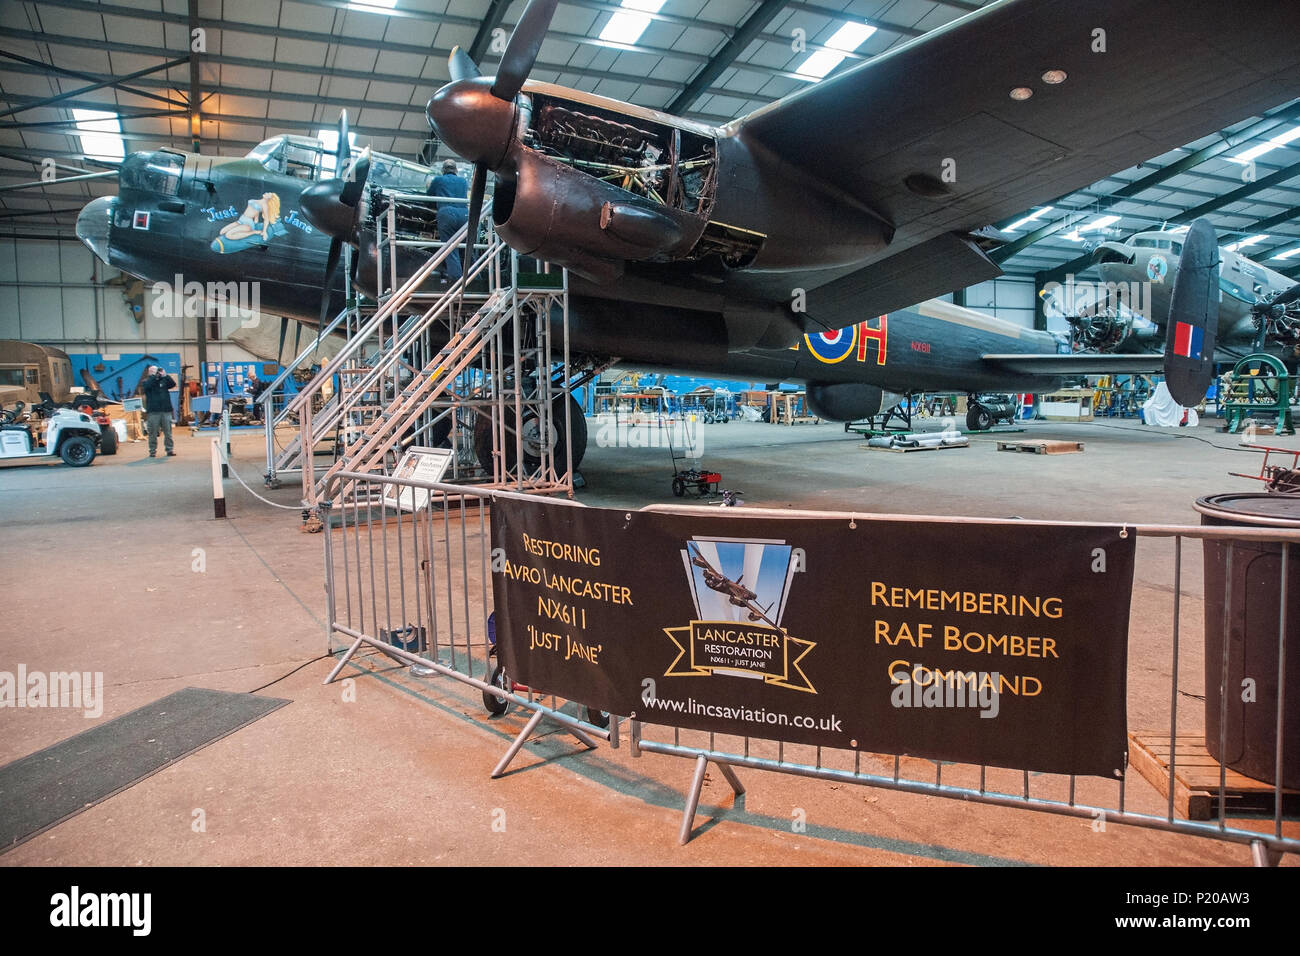 Avro Lancaster NX611 Just Jane in her hangar at the Lincolnshire Aviation Heritage Centre  East Kirkby. She is slowly being made airworthy. - Stock Image